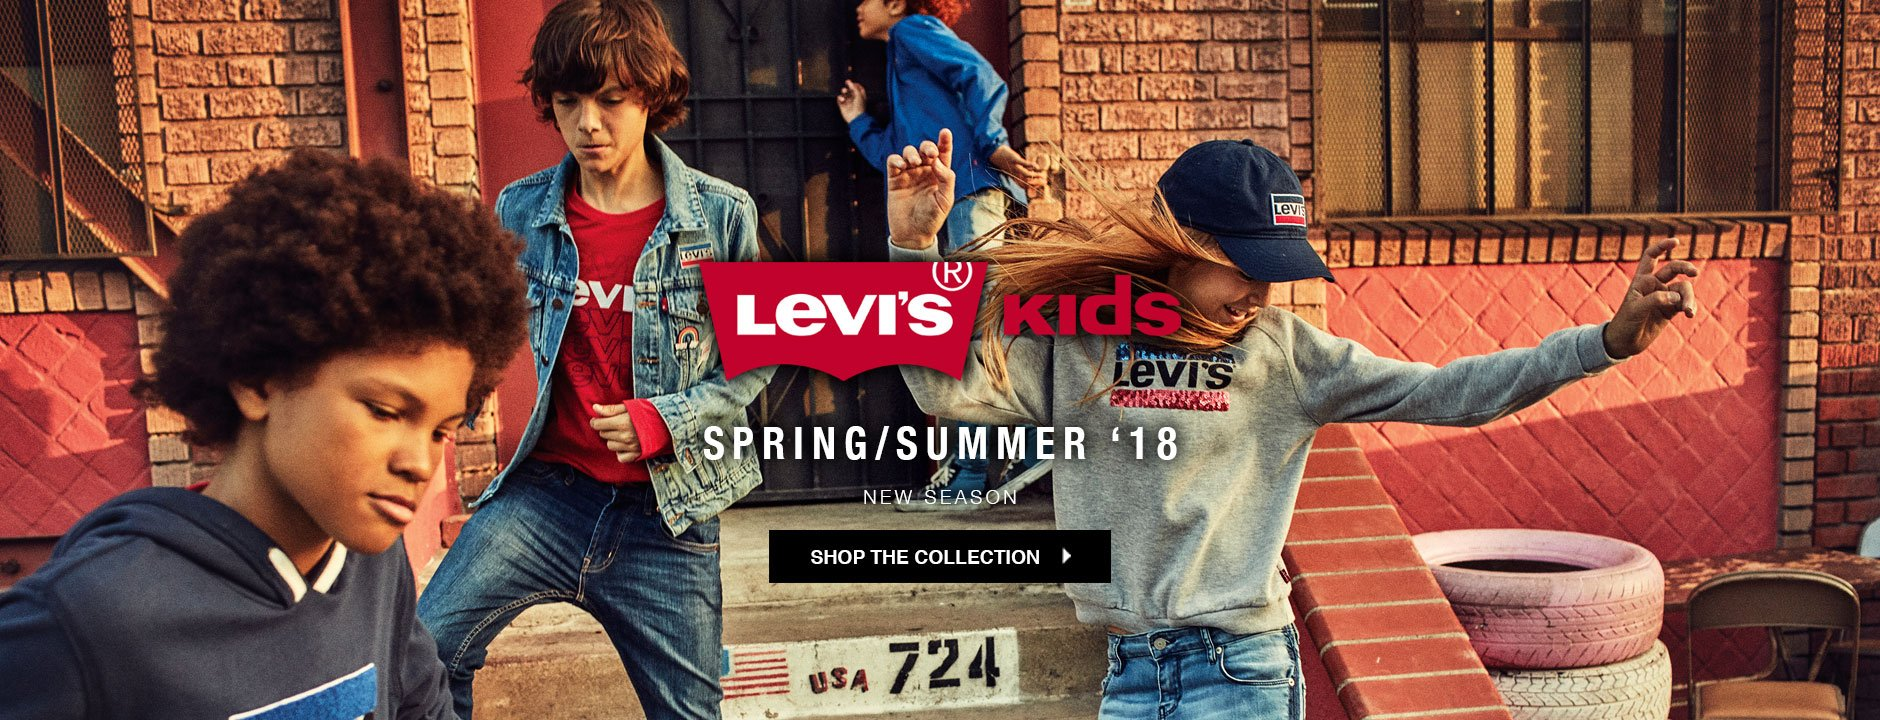 Levi's Autumn, Winter 2017 collection